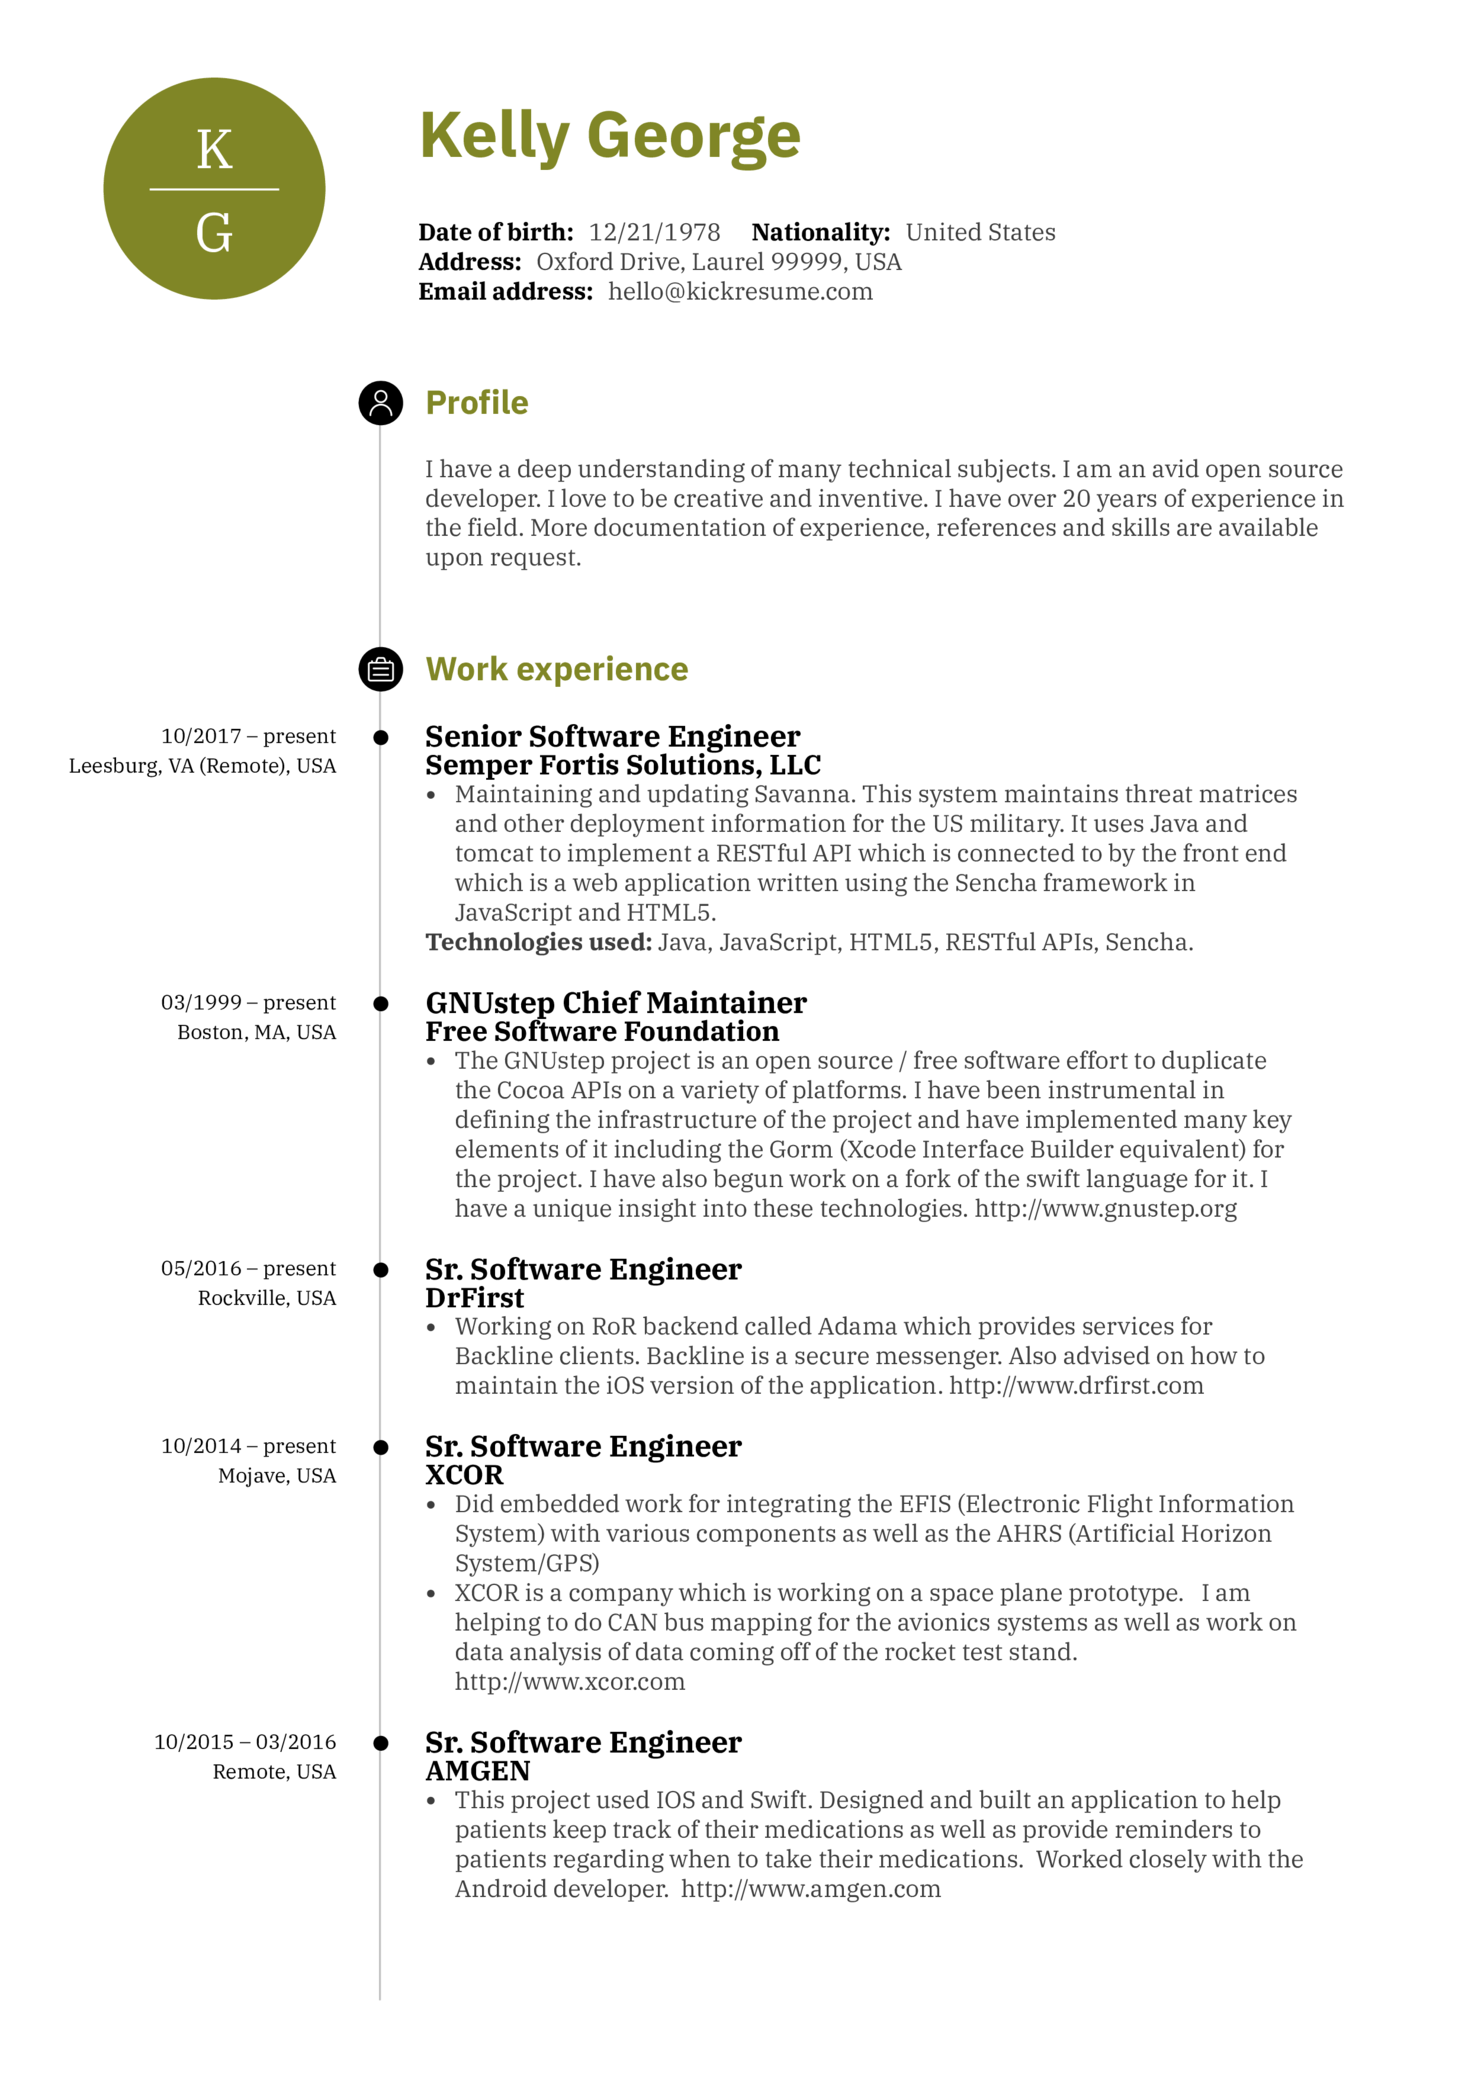 Senior Software Engineer Resume Sample Kickresume